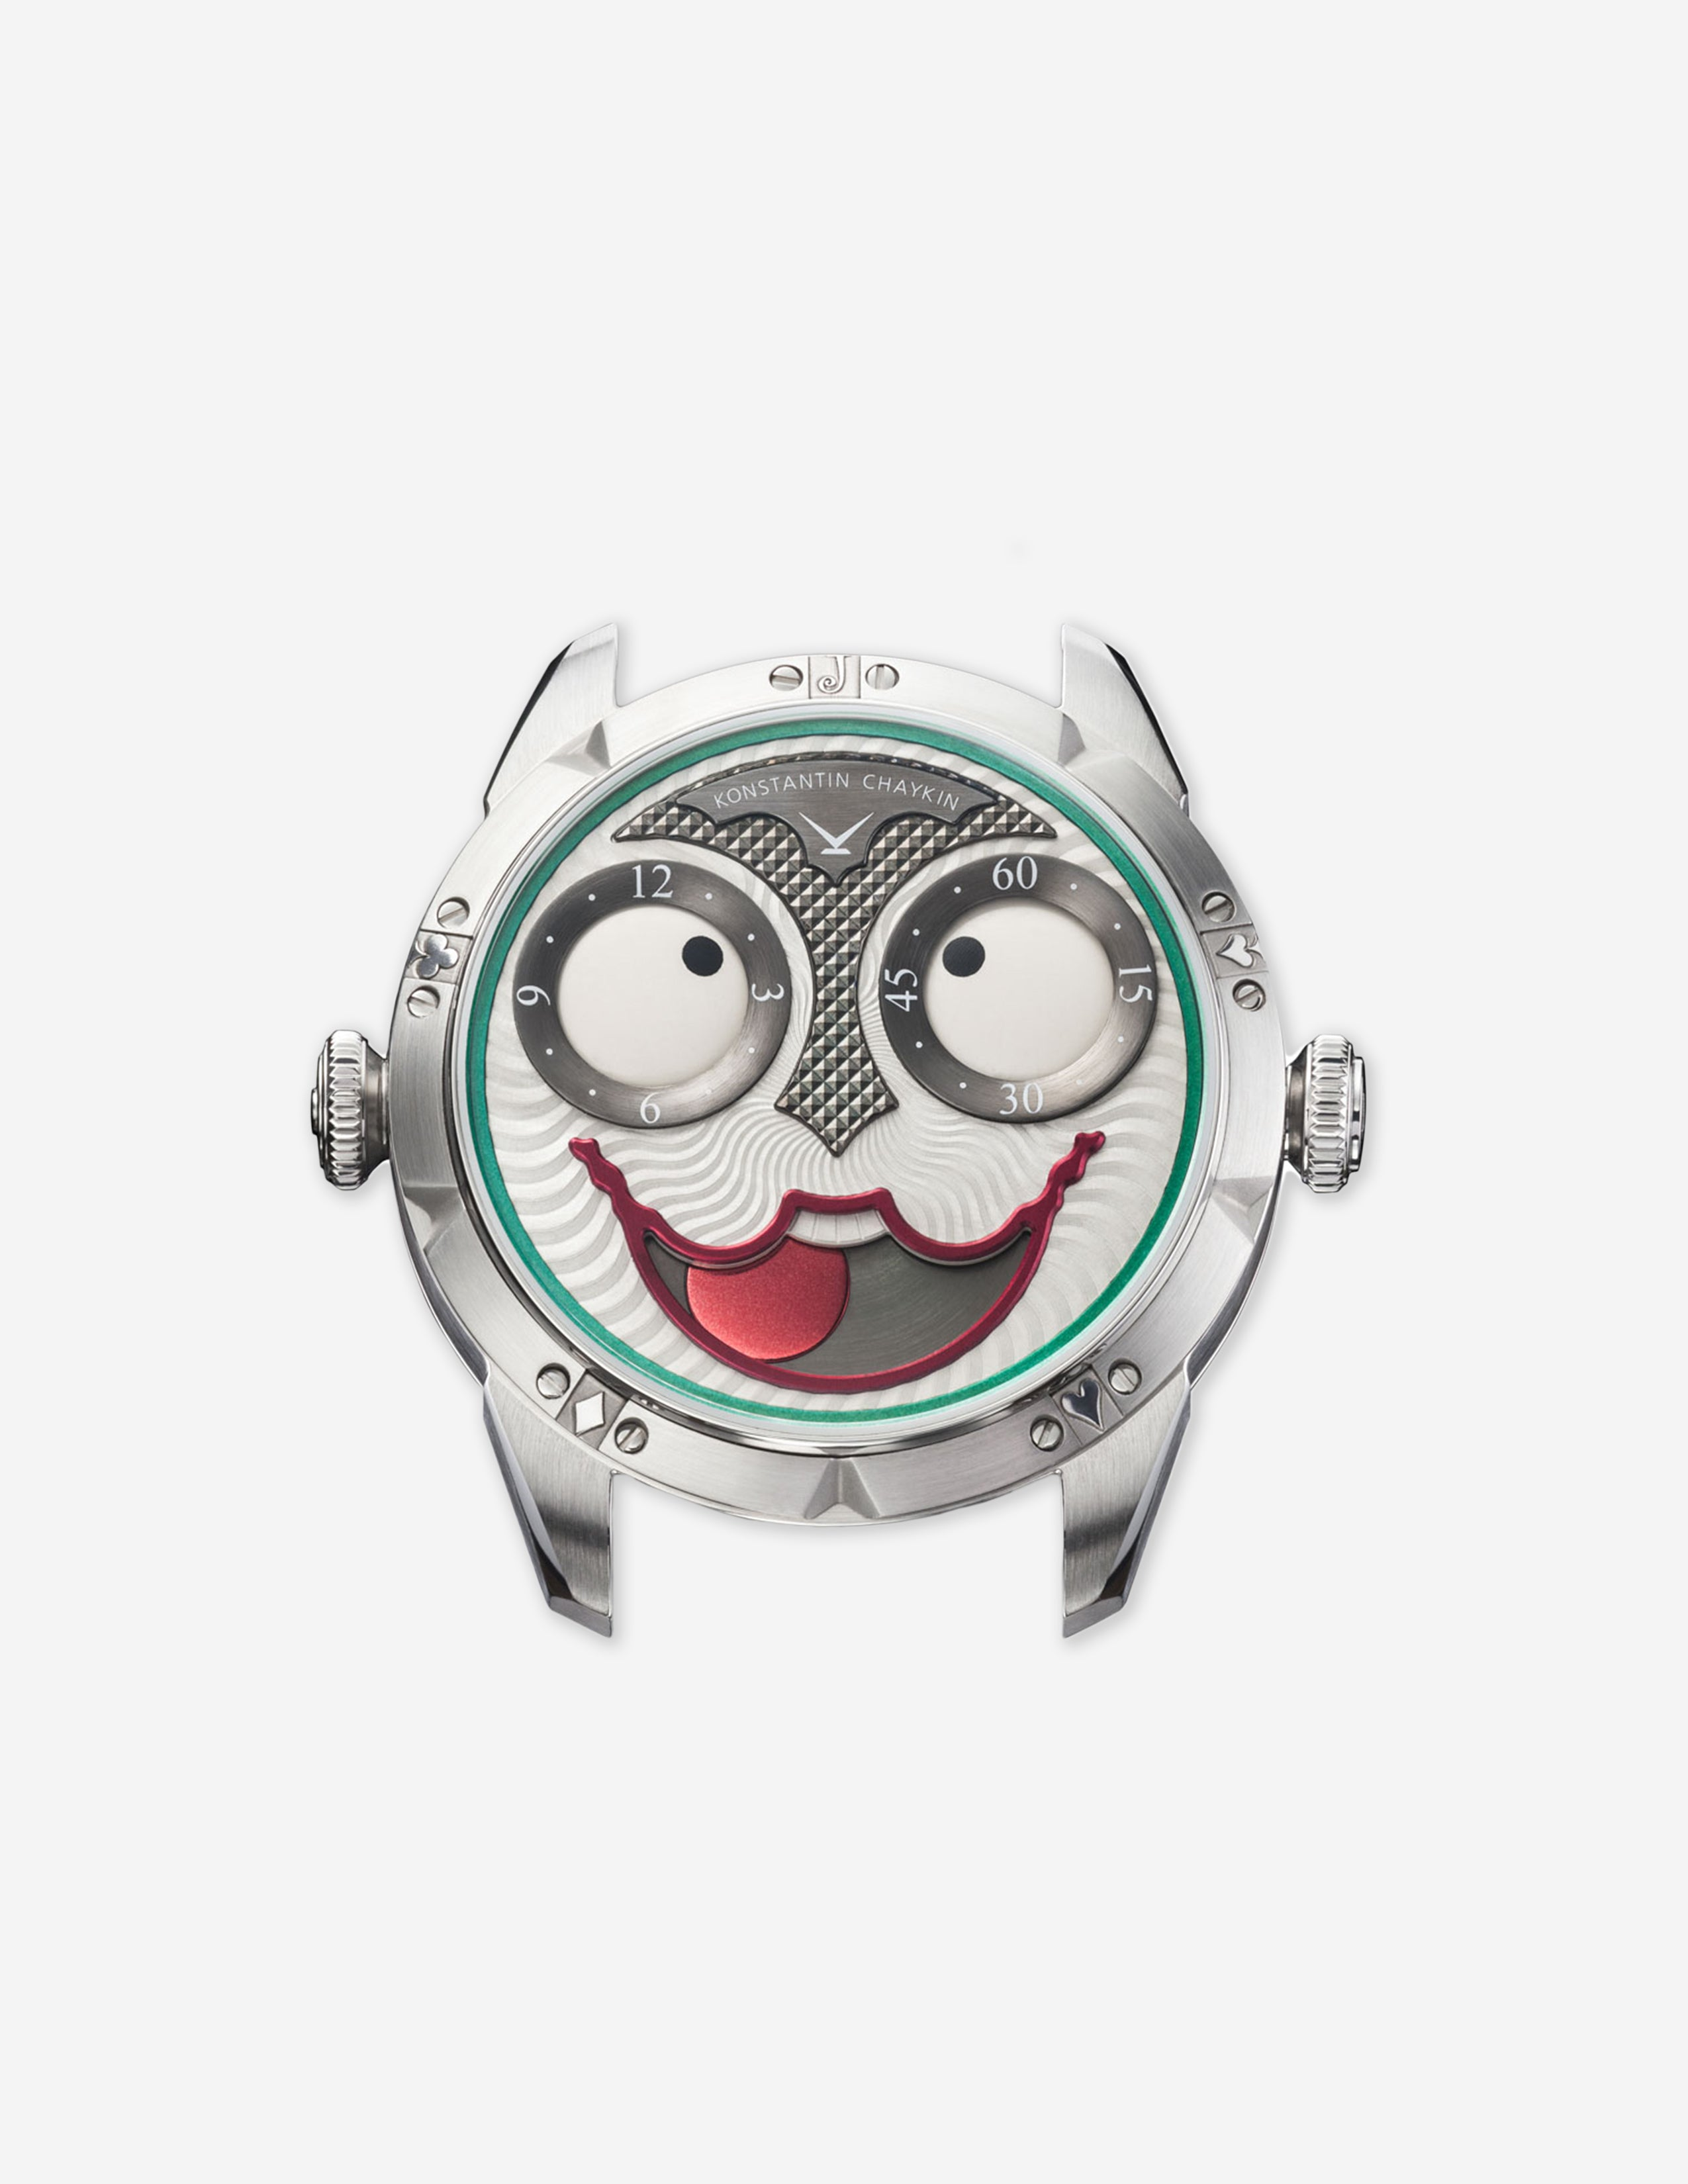 A Konstantin Chaykin Joker wristwatch with large moon phase mouth made in Russia for A Collected Man London